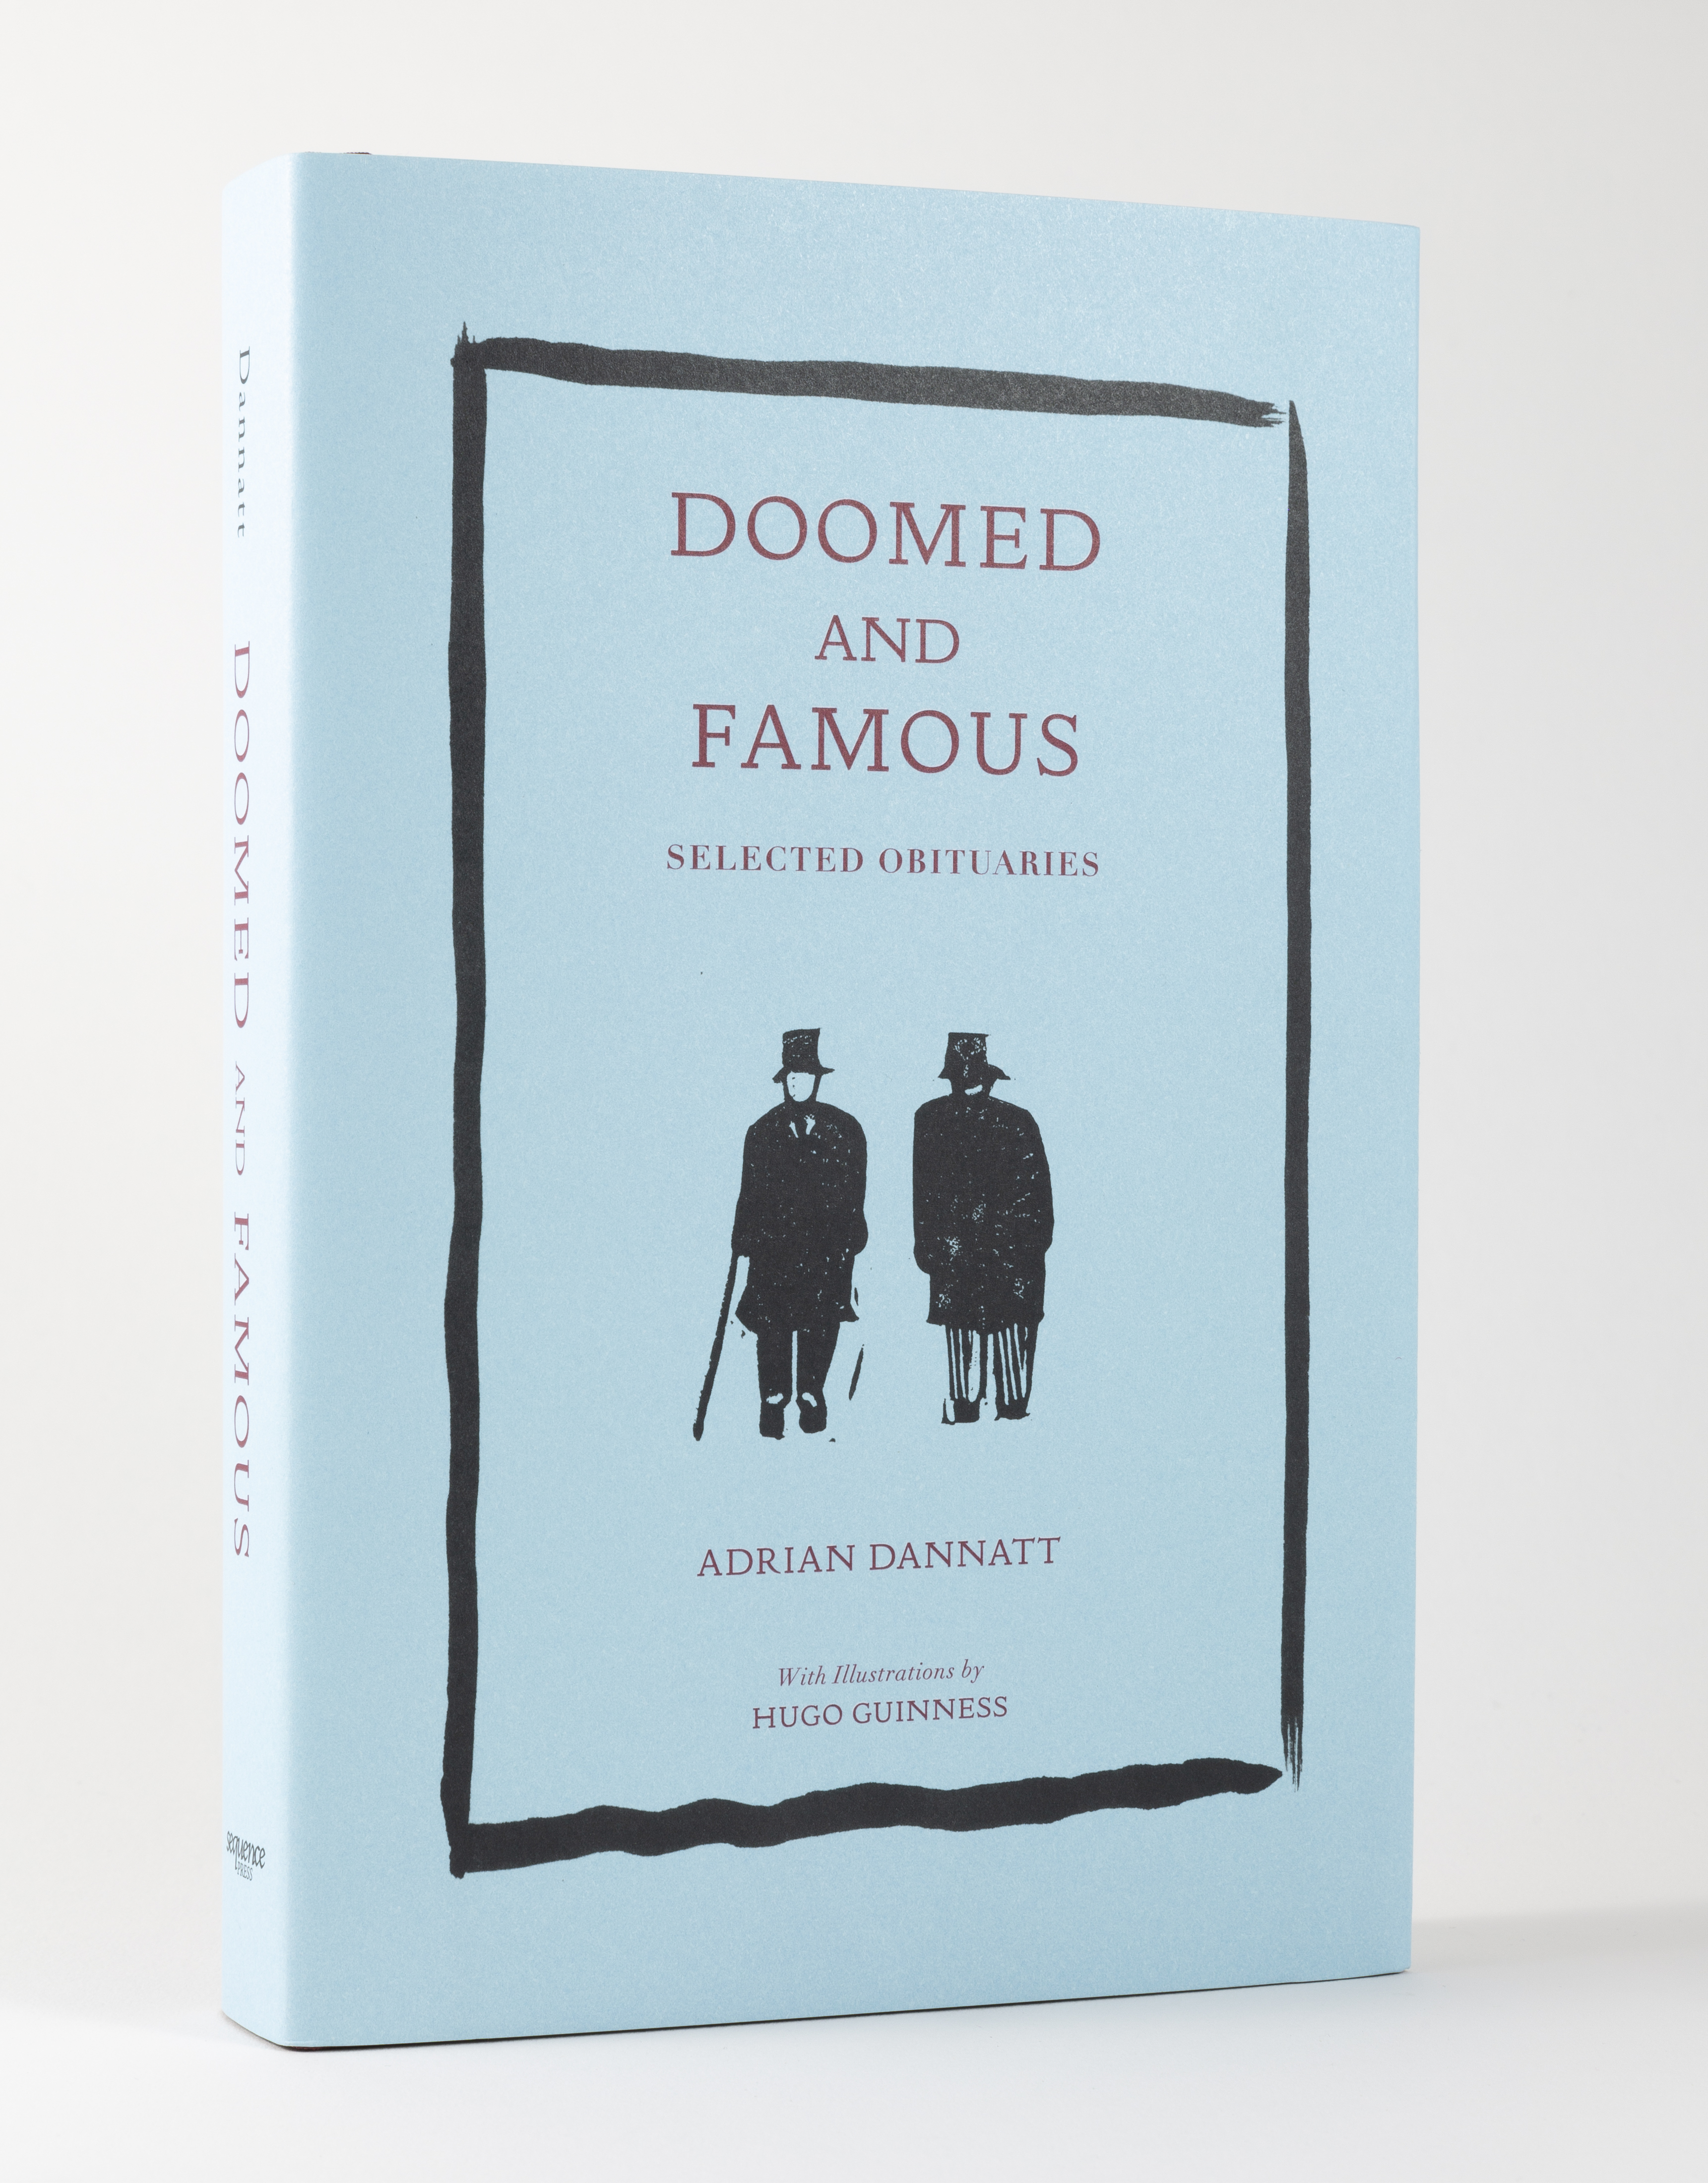 """Adrian Dannatt's """"Doomed and Famous"""" with Illustrations by Hugo Guinness (Sequence Press, 2021)"""